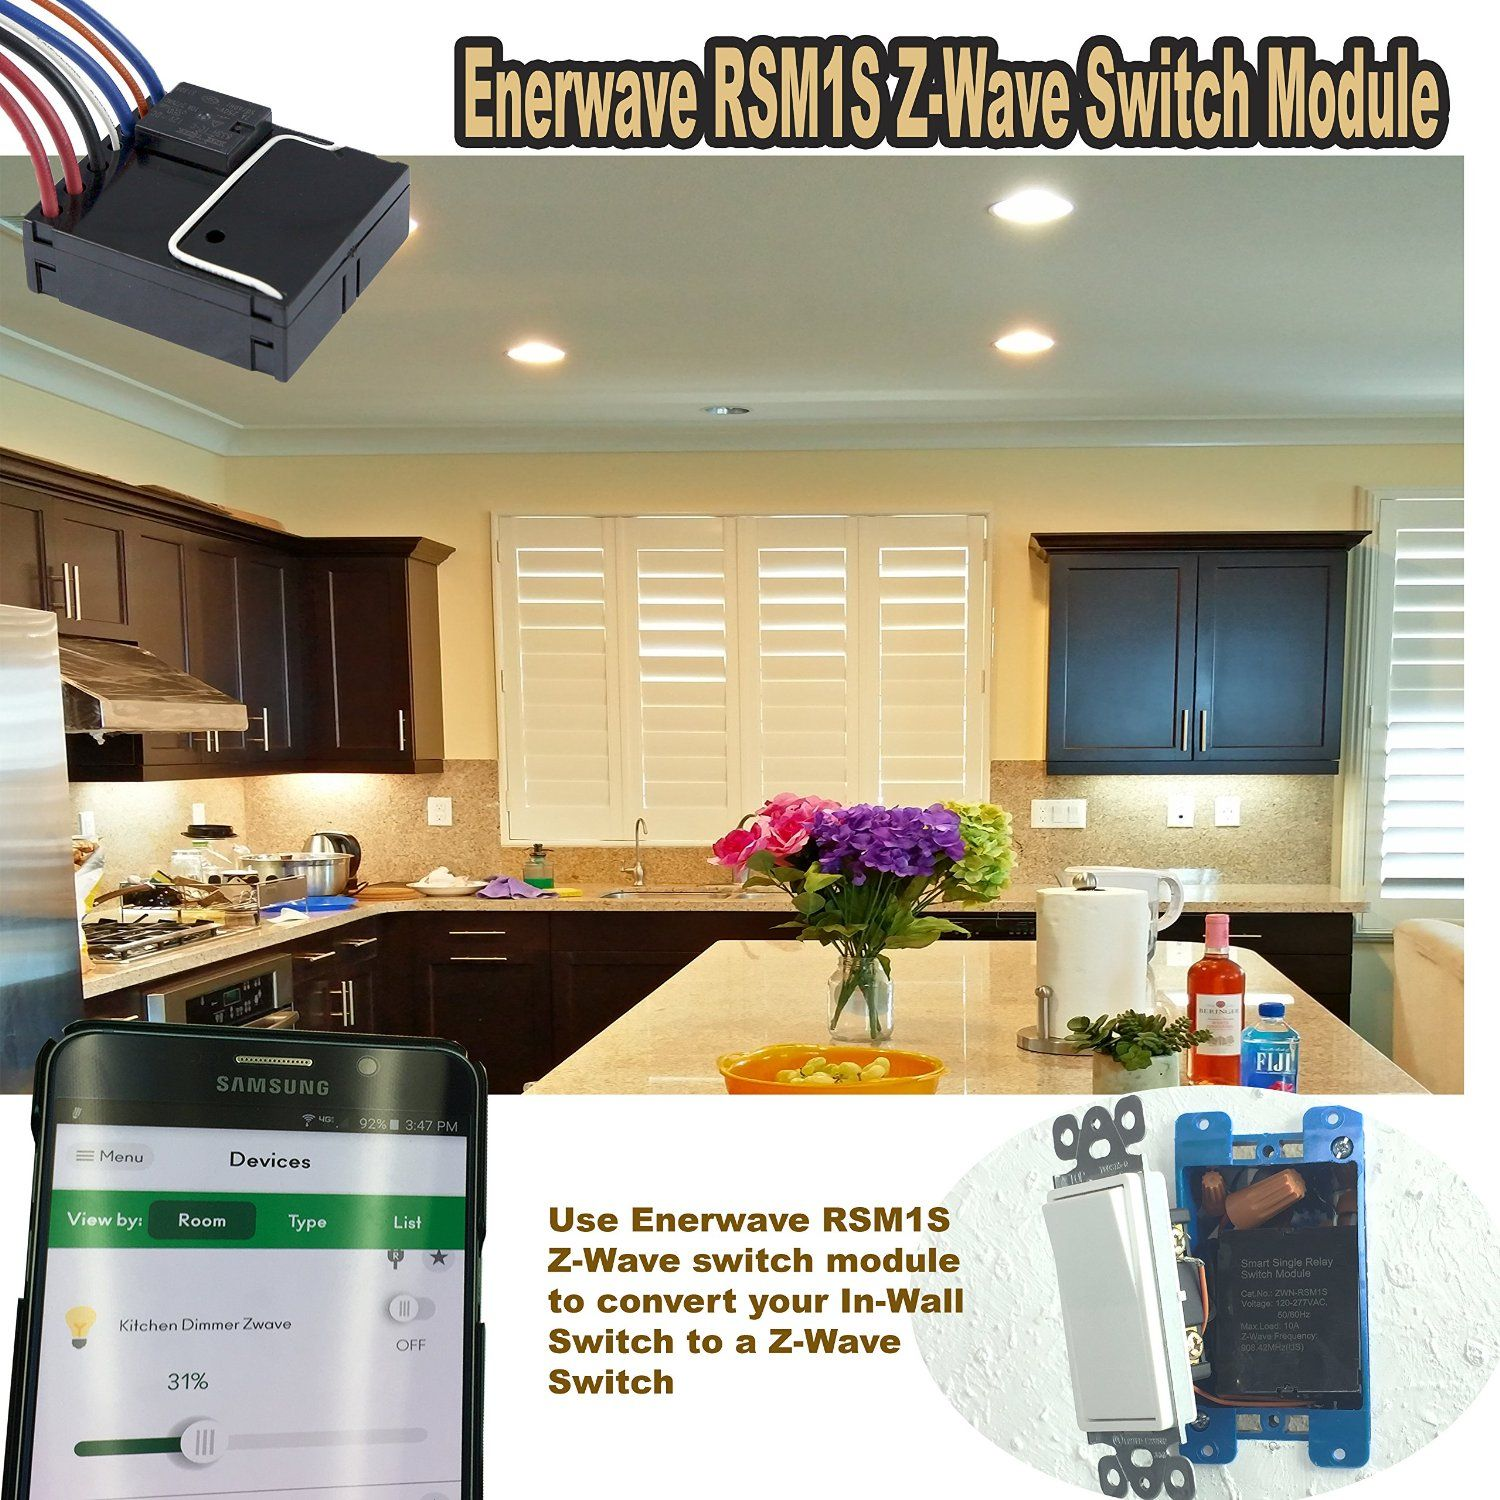 Enerwave Zwn Rsm1s Z Wave Smart Single Relay Switch Module With Bypass Function Amazoncom